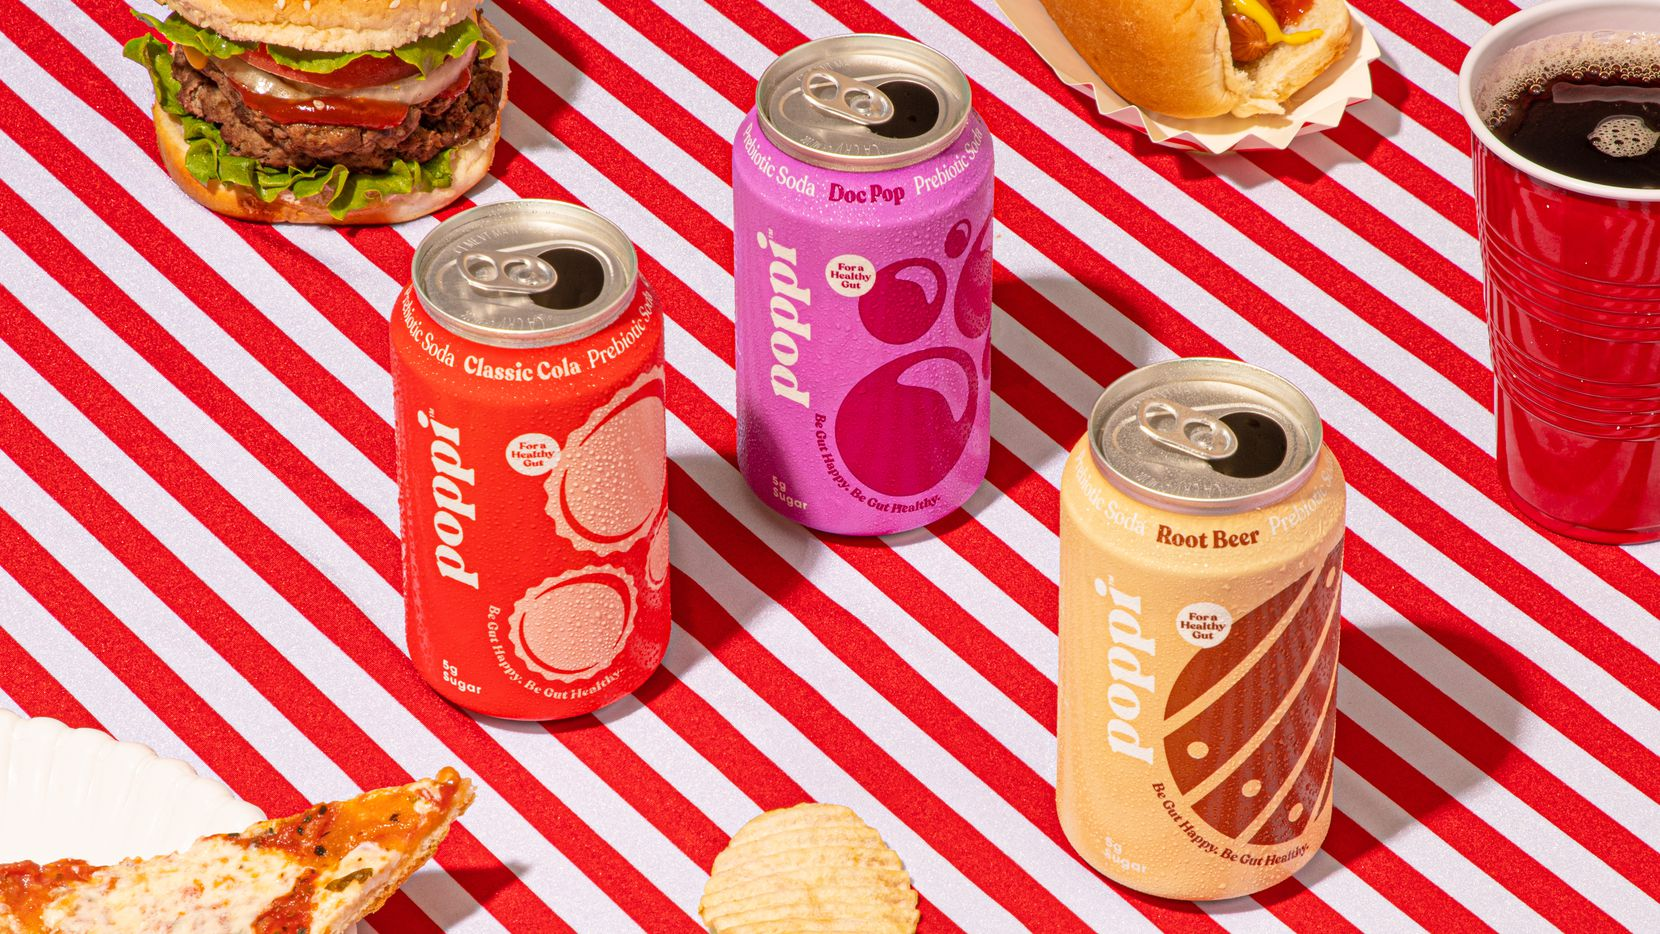 Poppi drinks has launched a new Classics line of sodas.